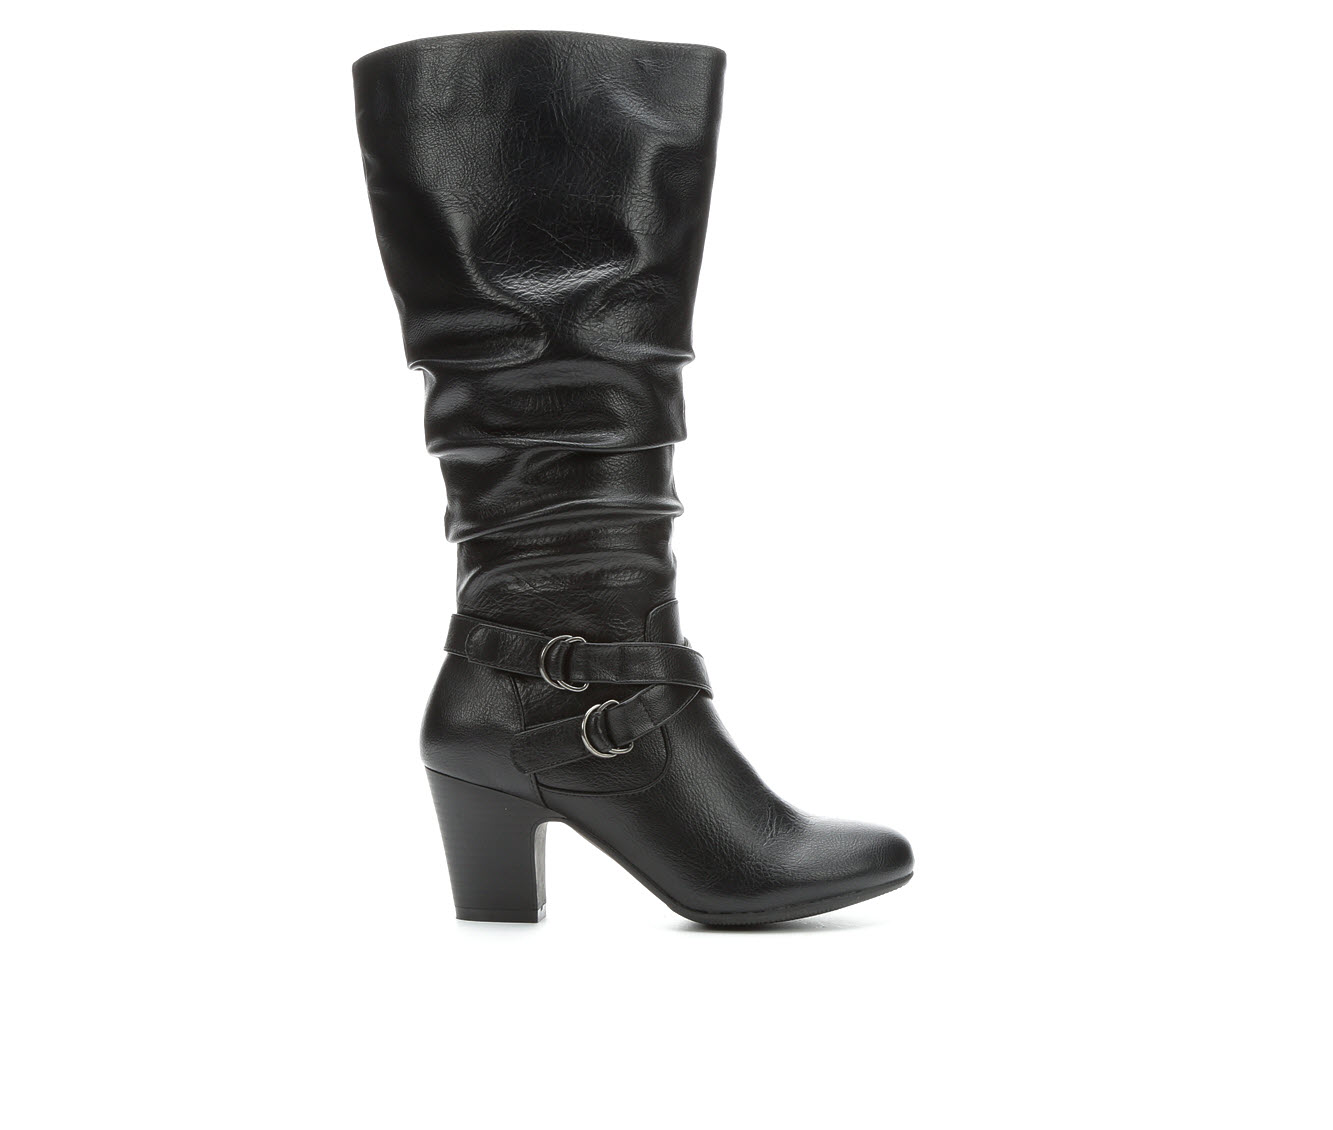 Solanz Poesy Women's Boot (Black Faux Leather)